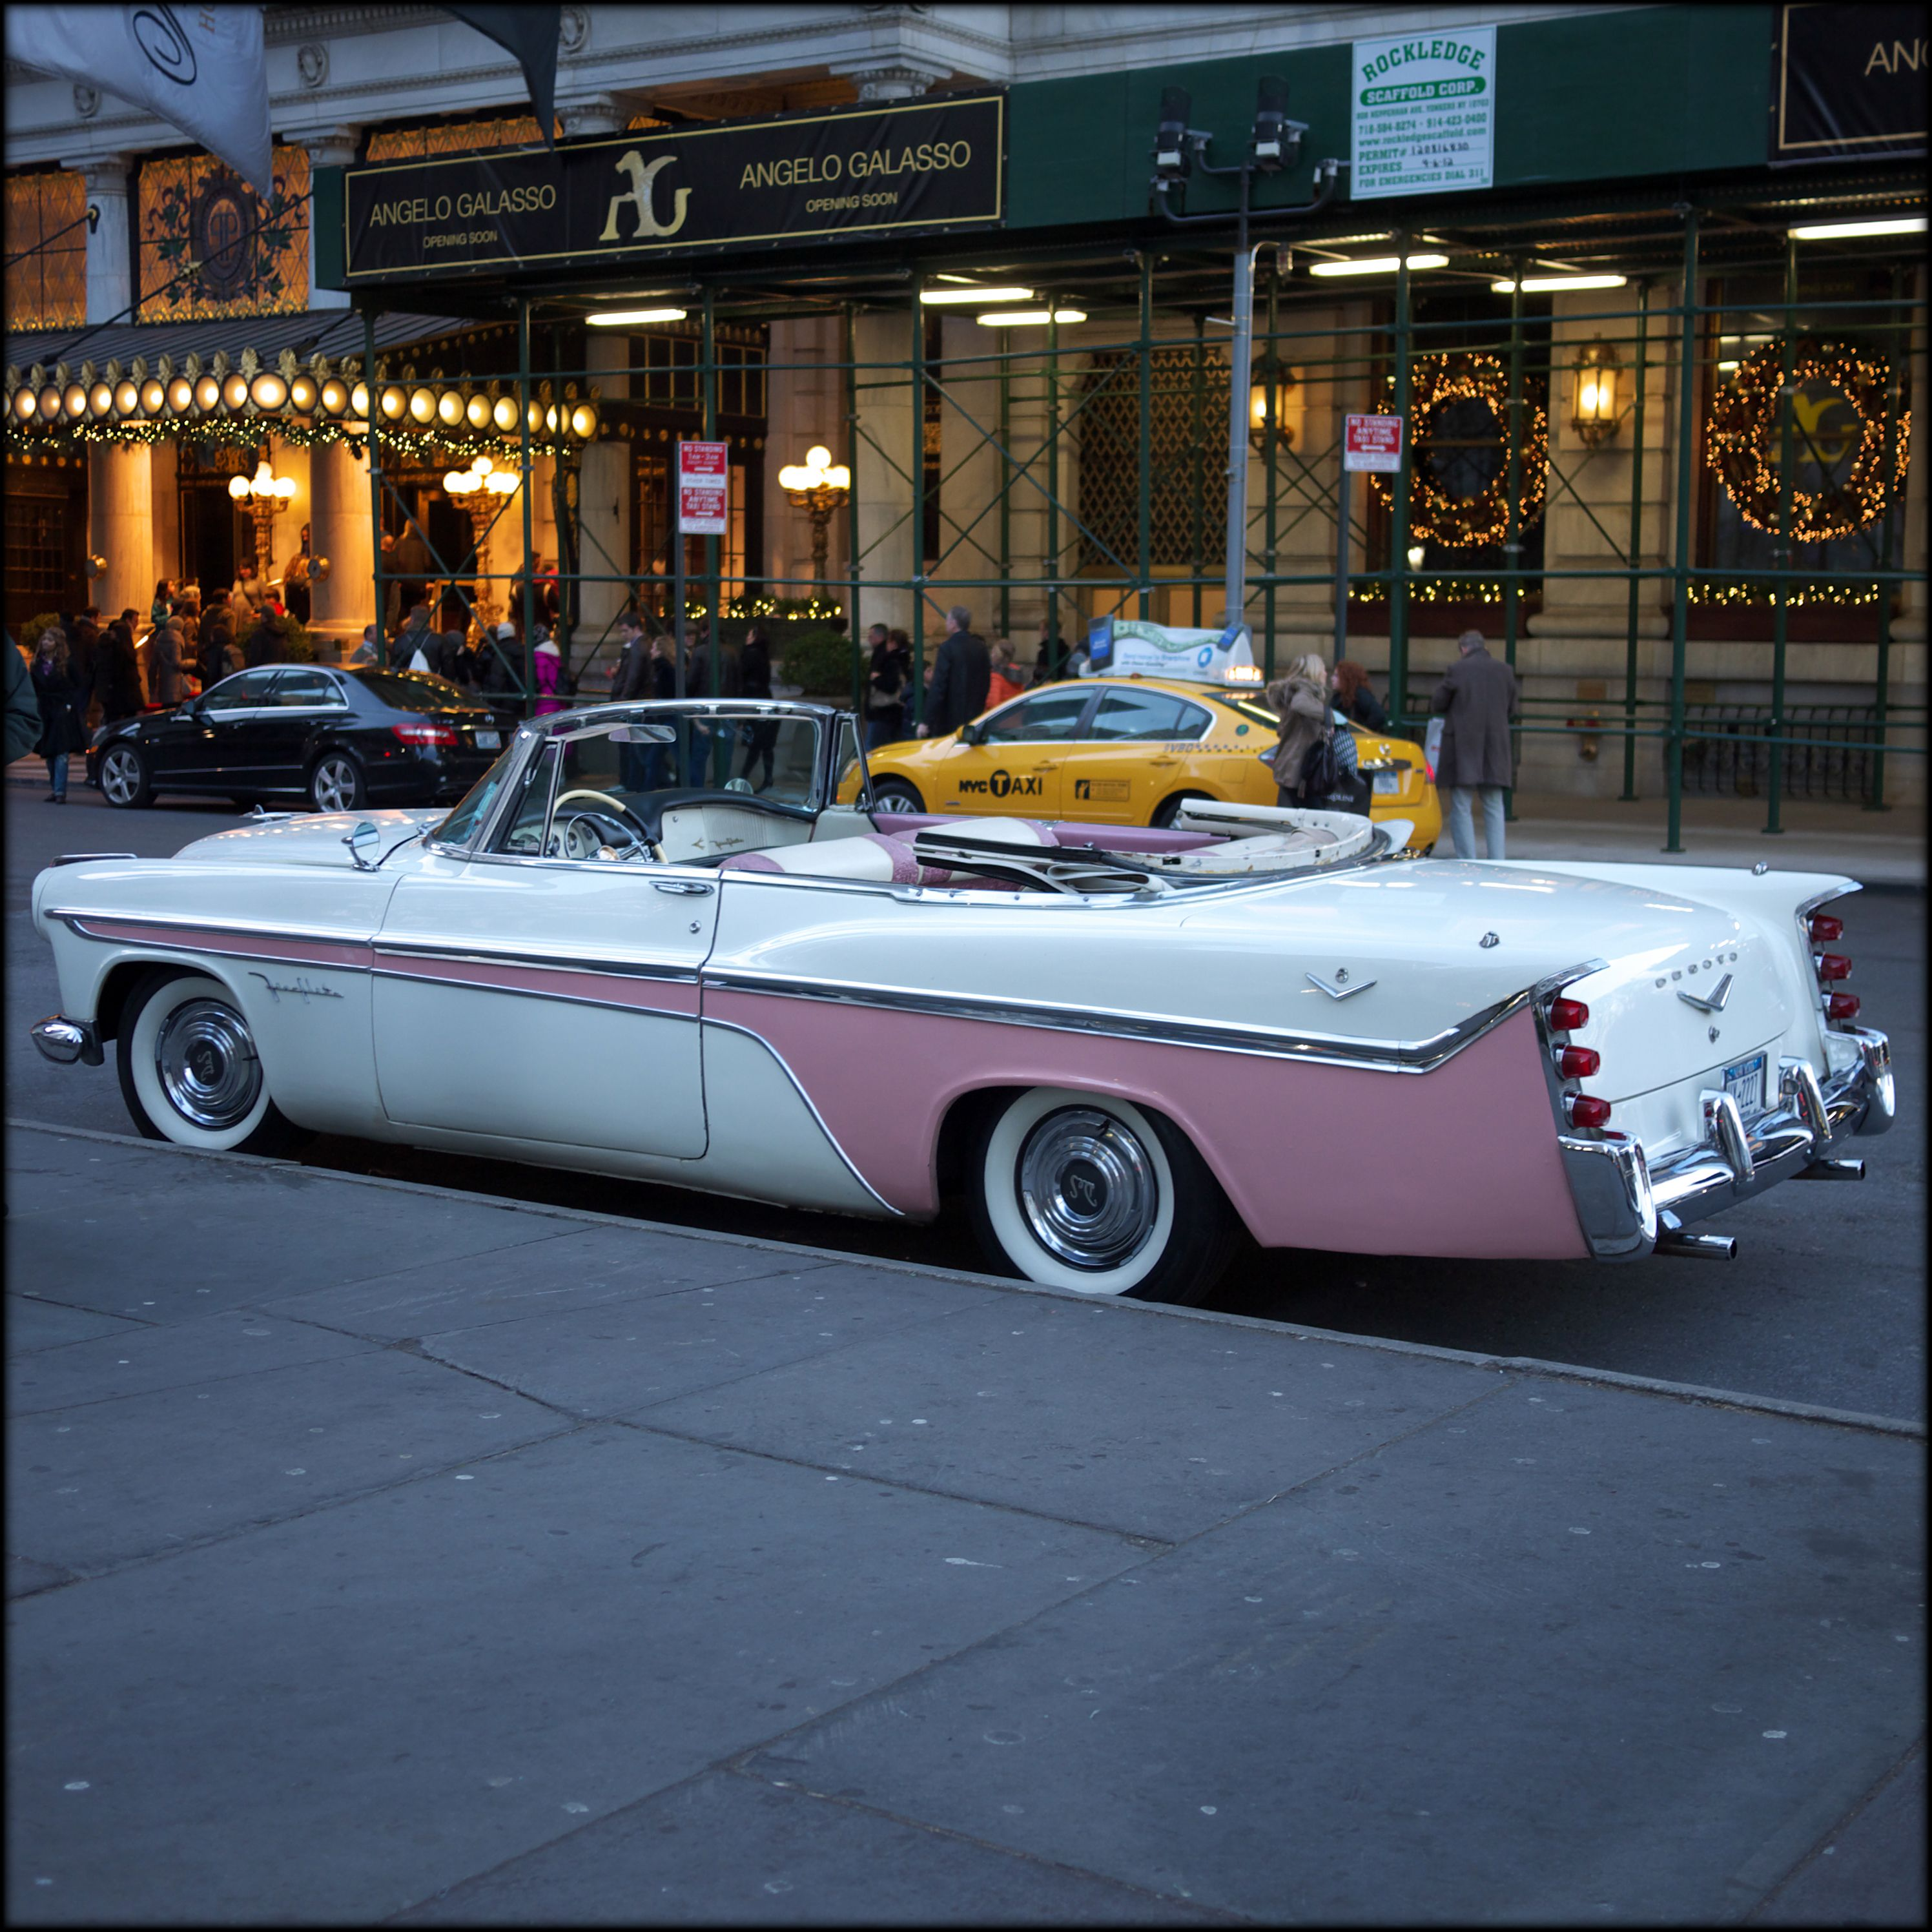 1950 S Car Outside Plaza Hotel New All Weather Falken Tire To